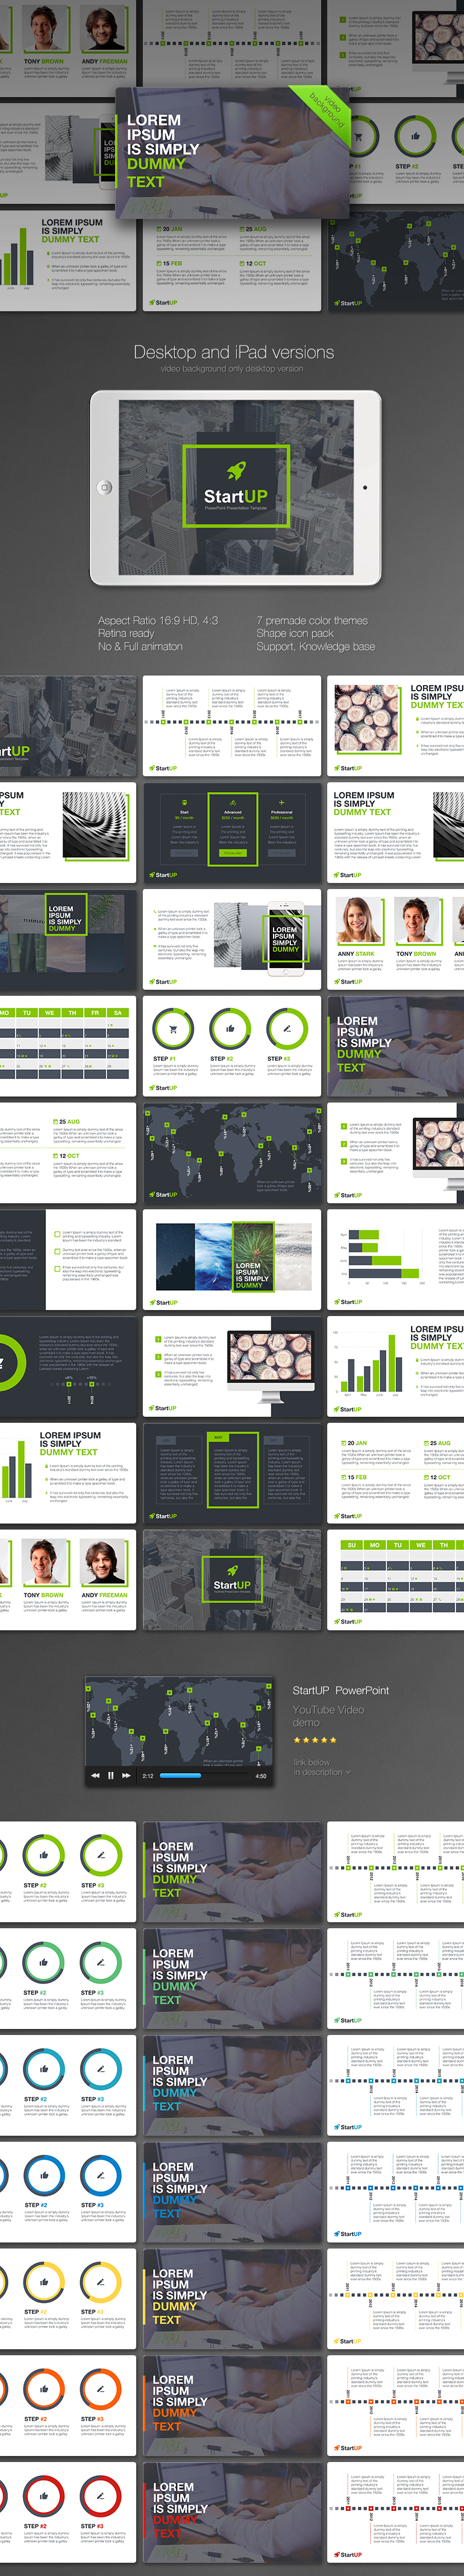 Download httpshislideproductstartup powerpoint template startup keynote template for mac iwork 21 unique slides no full animation 7 pre made color and aspect ratio toneelgroepblik Gallery